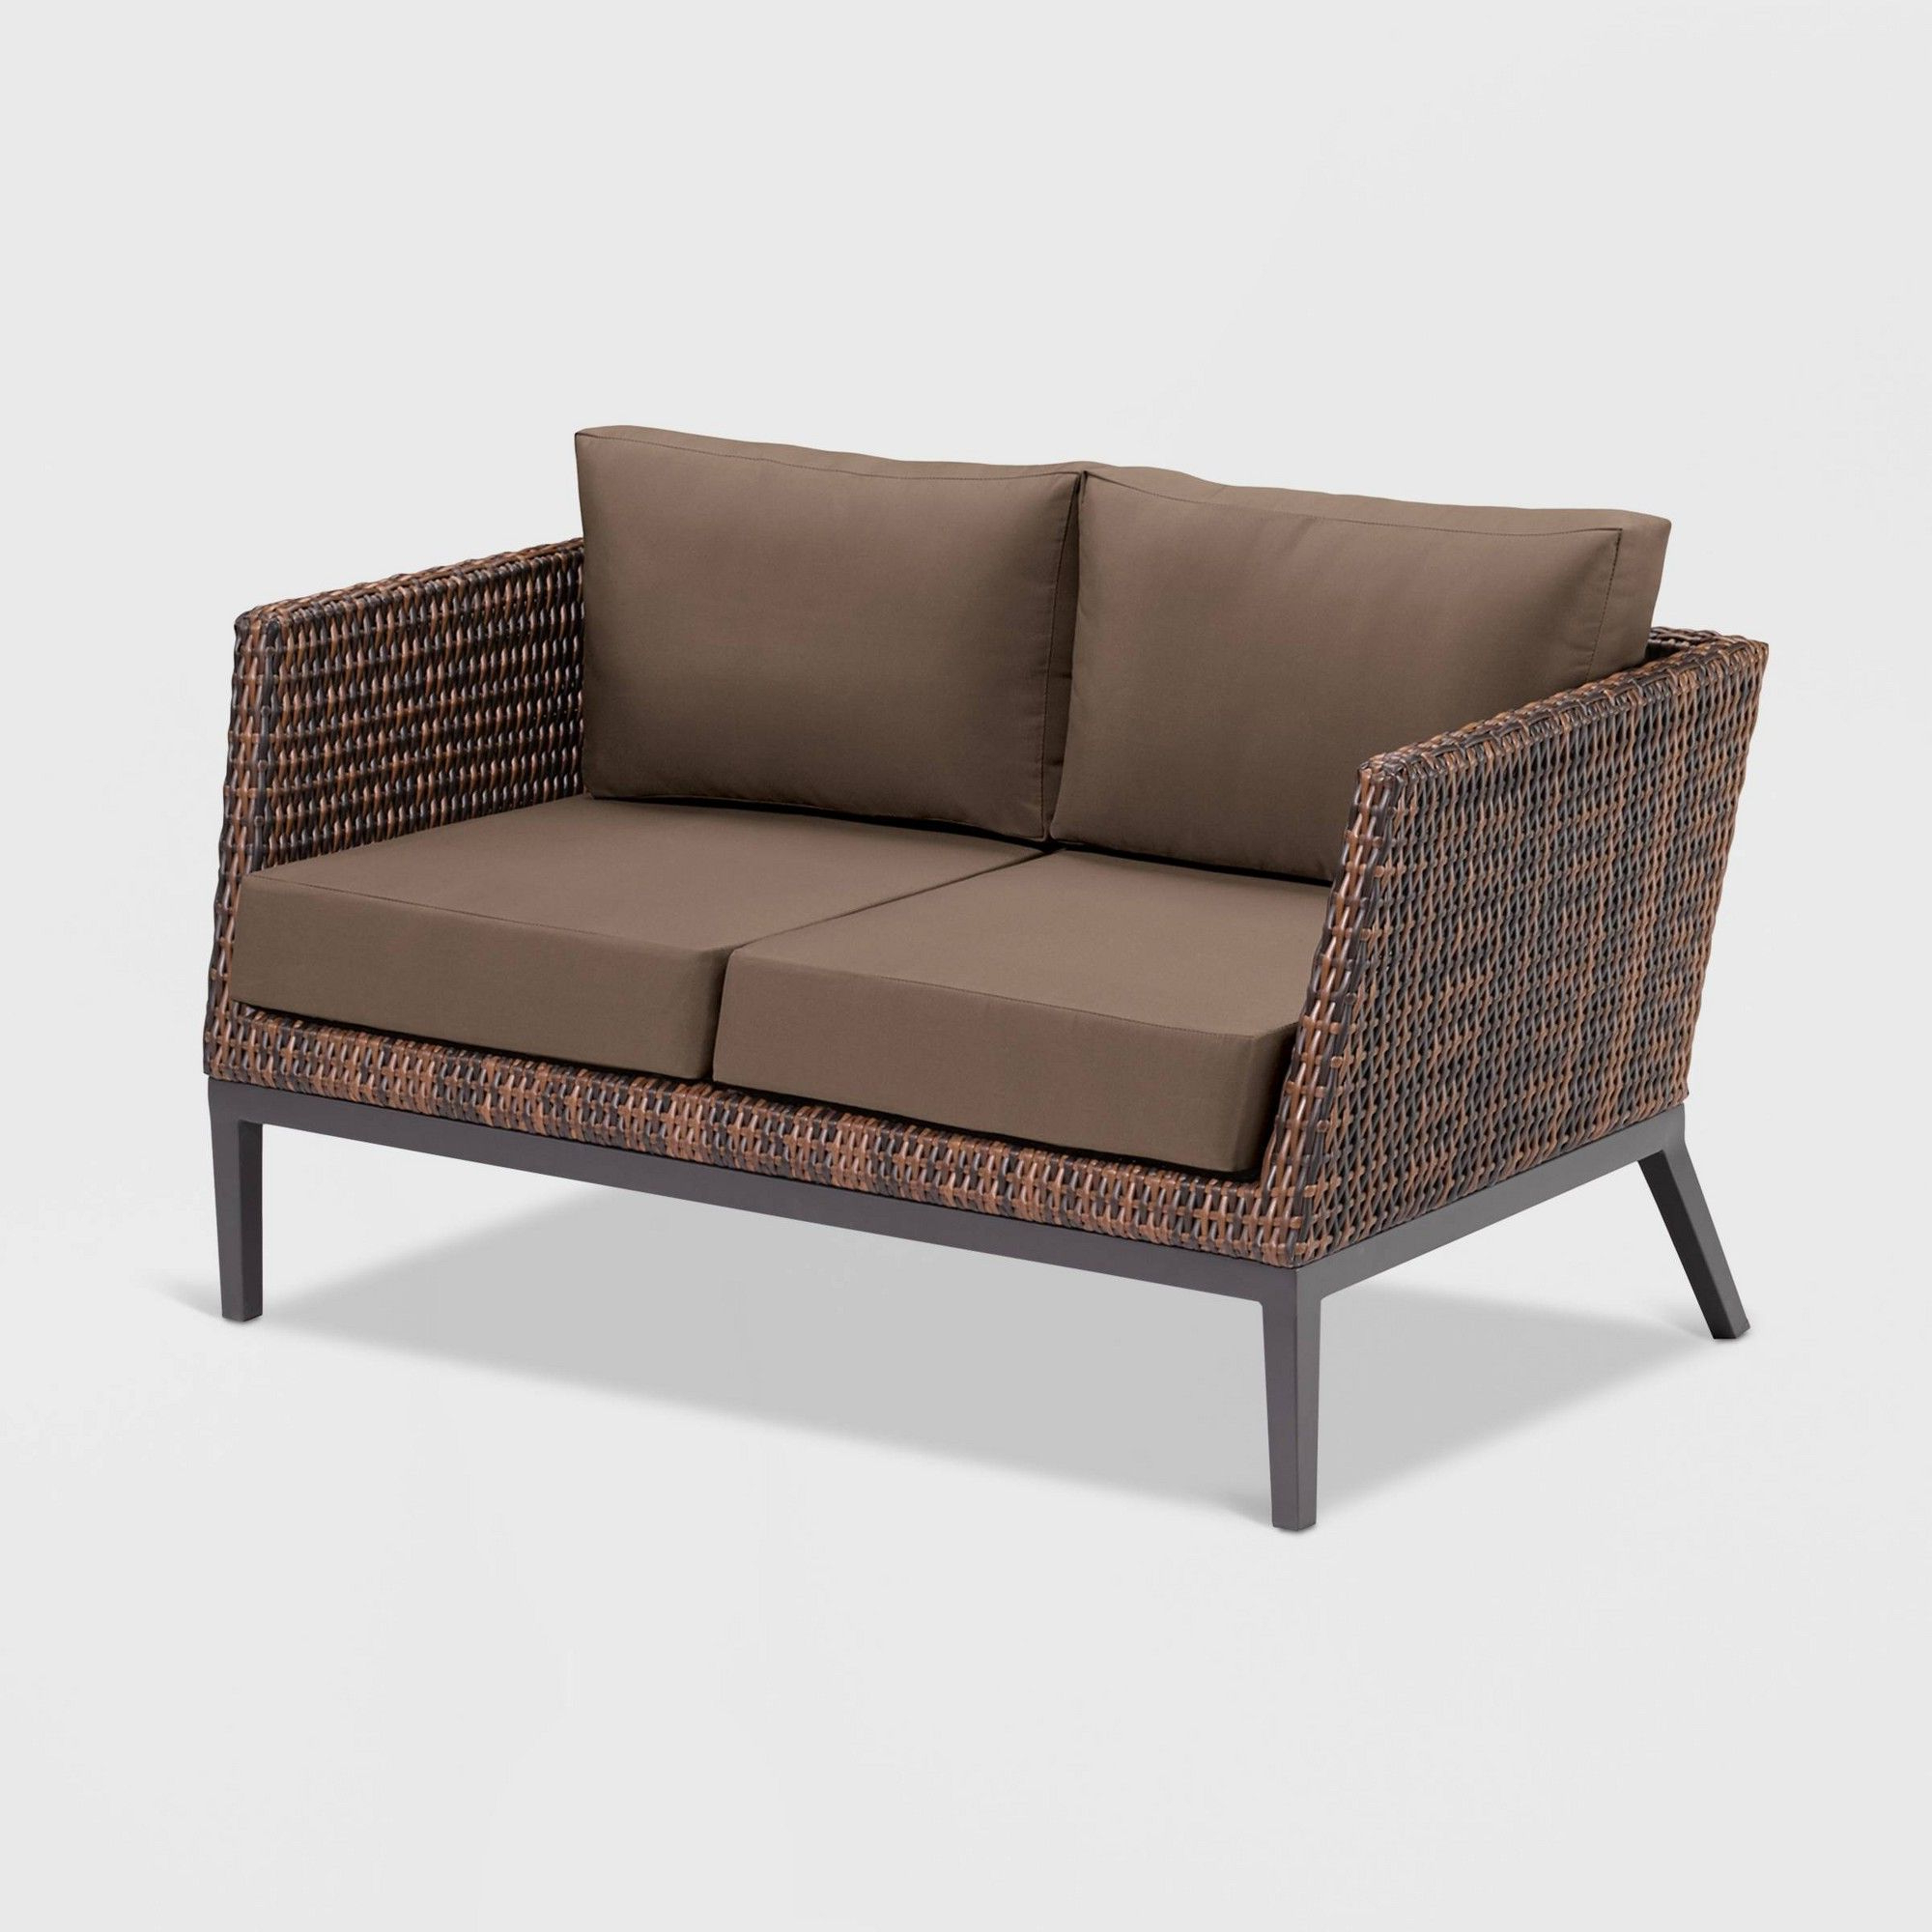 Popular Hagler Outdoor Loveseats With Cushions Pertaining To Salino Woven Resin Wicker Patio Loveseat – Brown – Oxford (View 9 of 25)